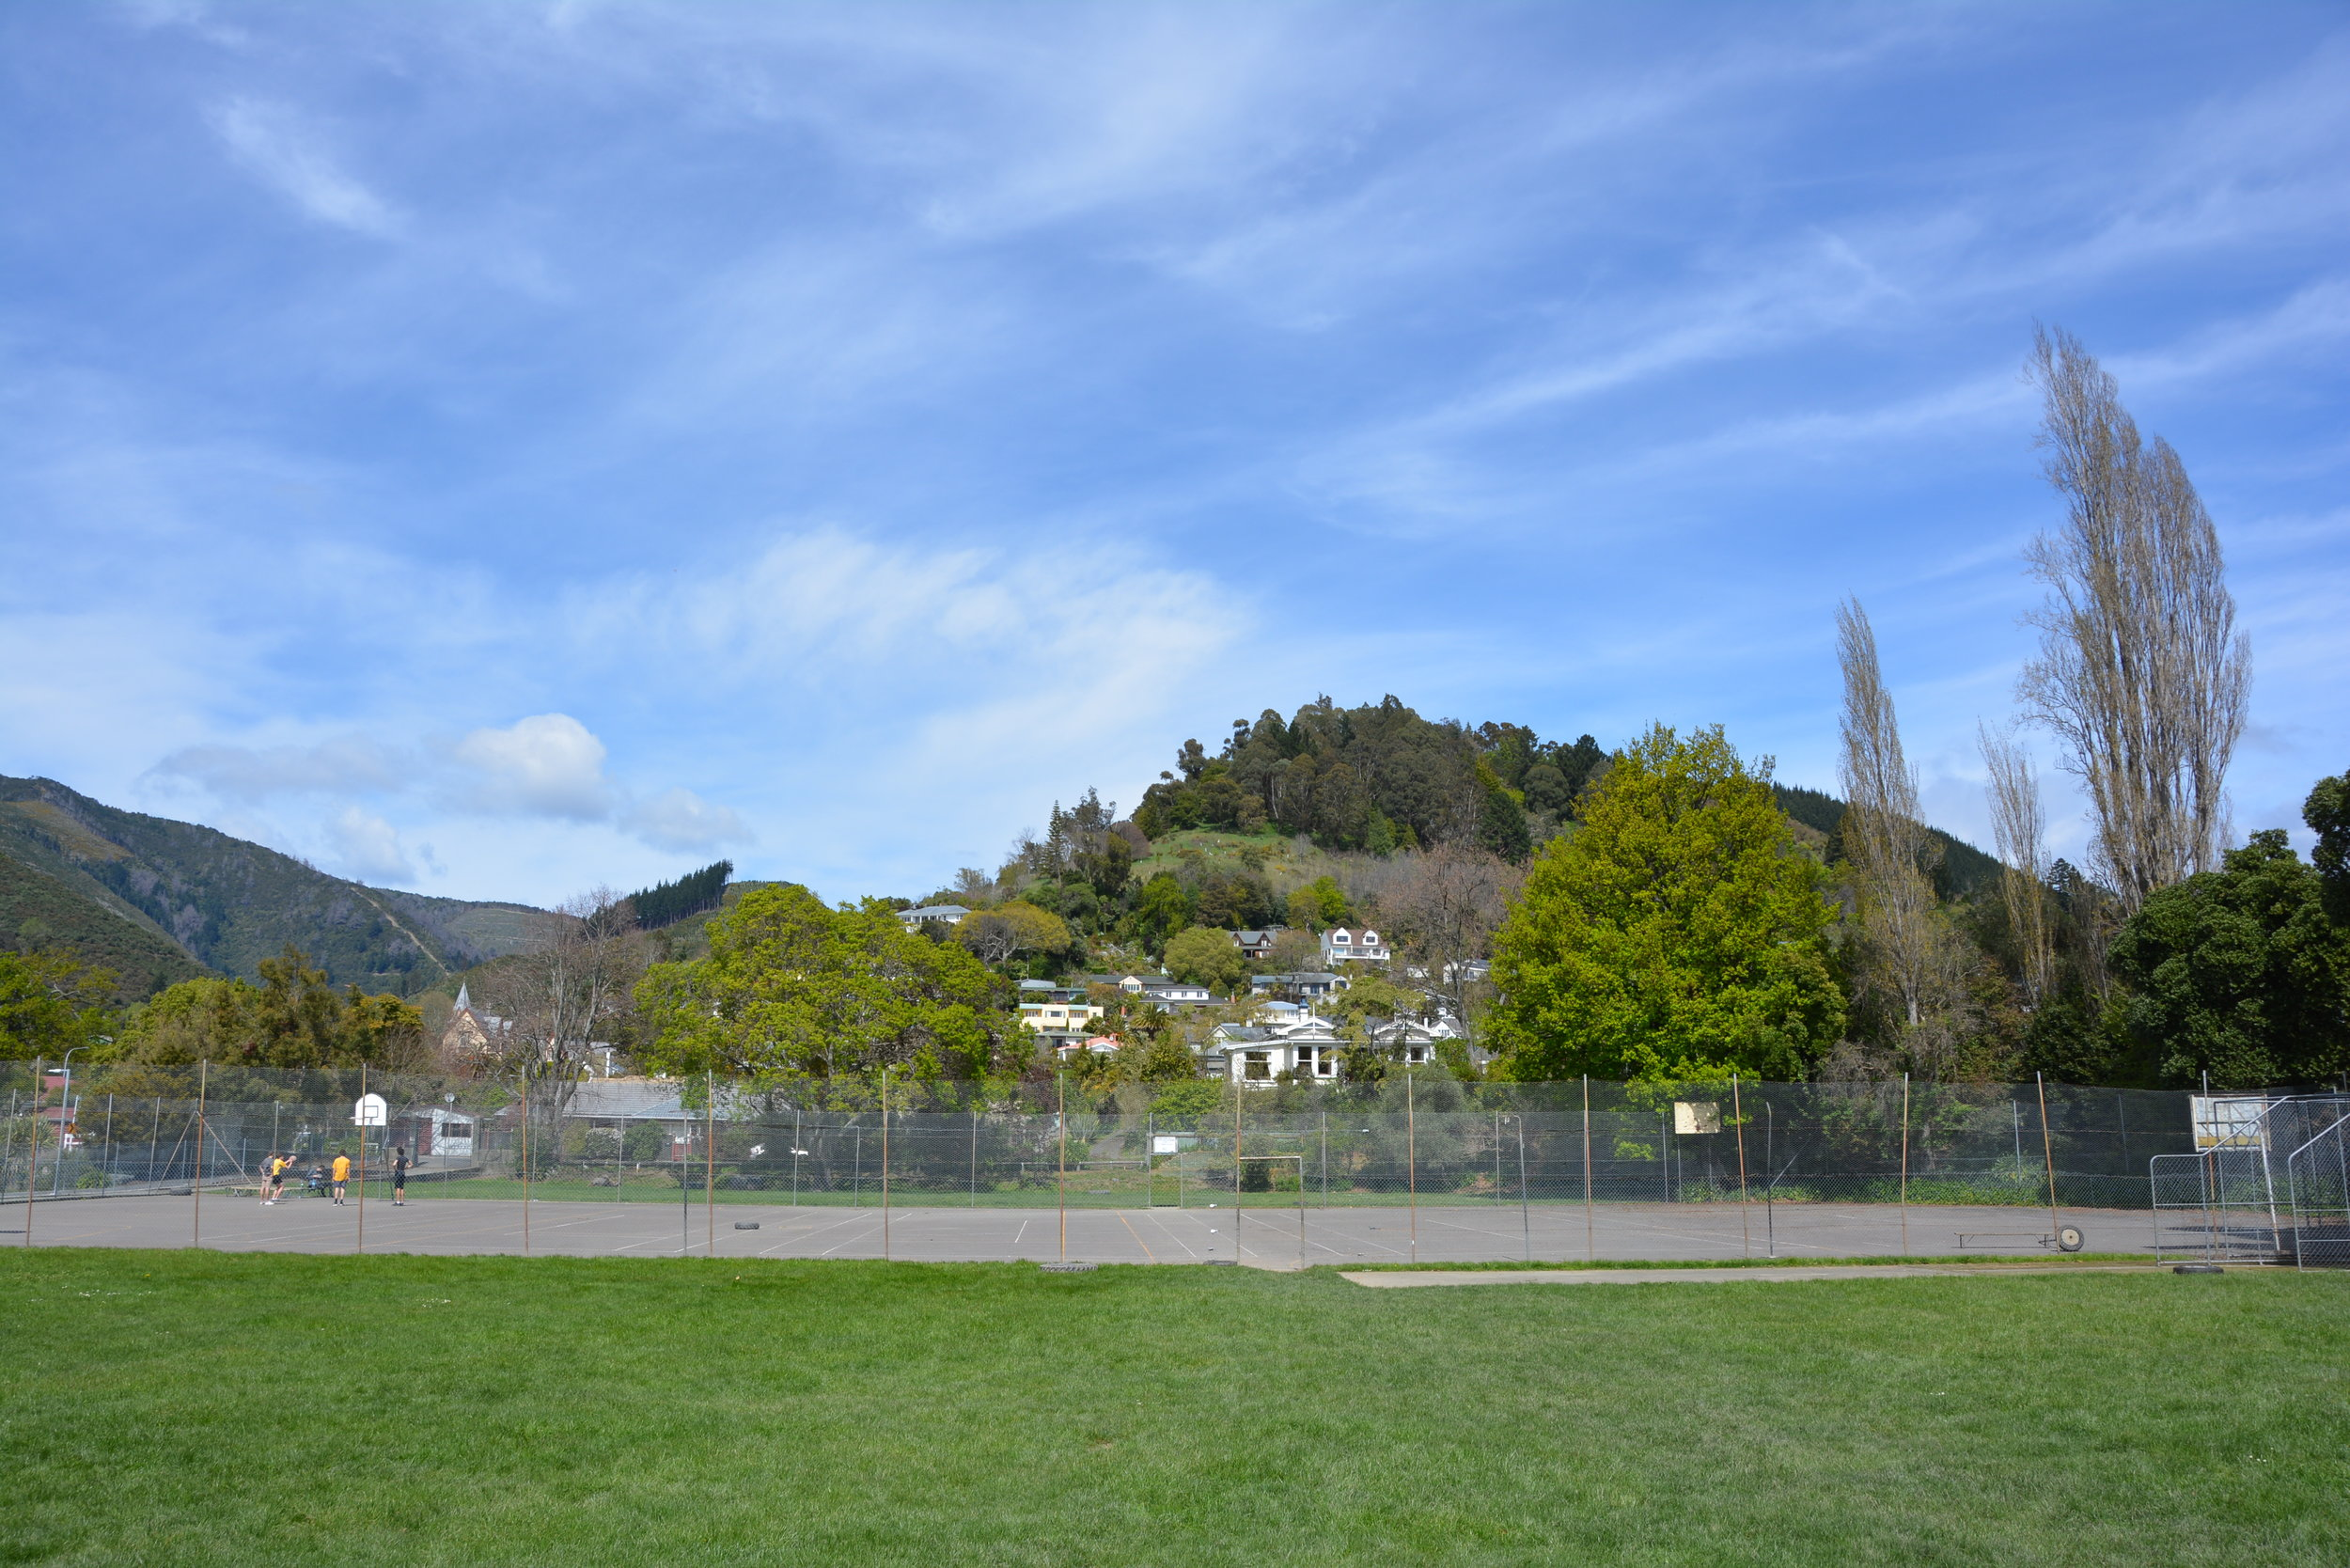 TENNIS COURTS AND SPORTS FIELDS